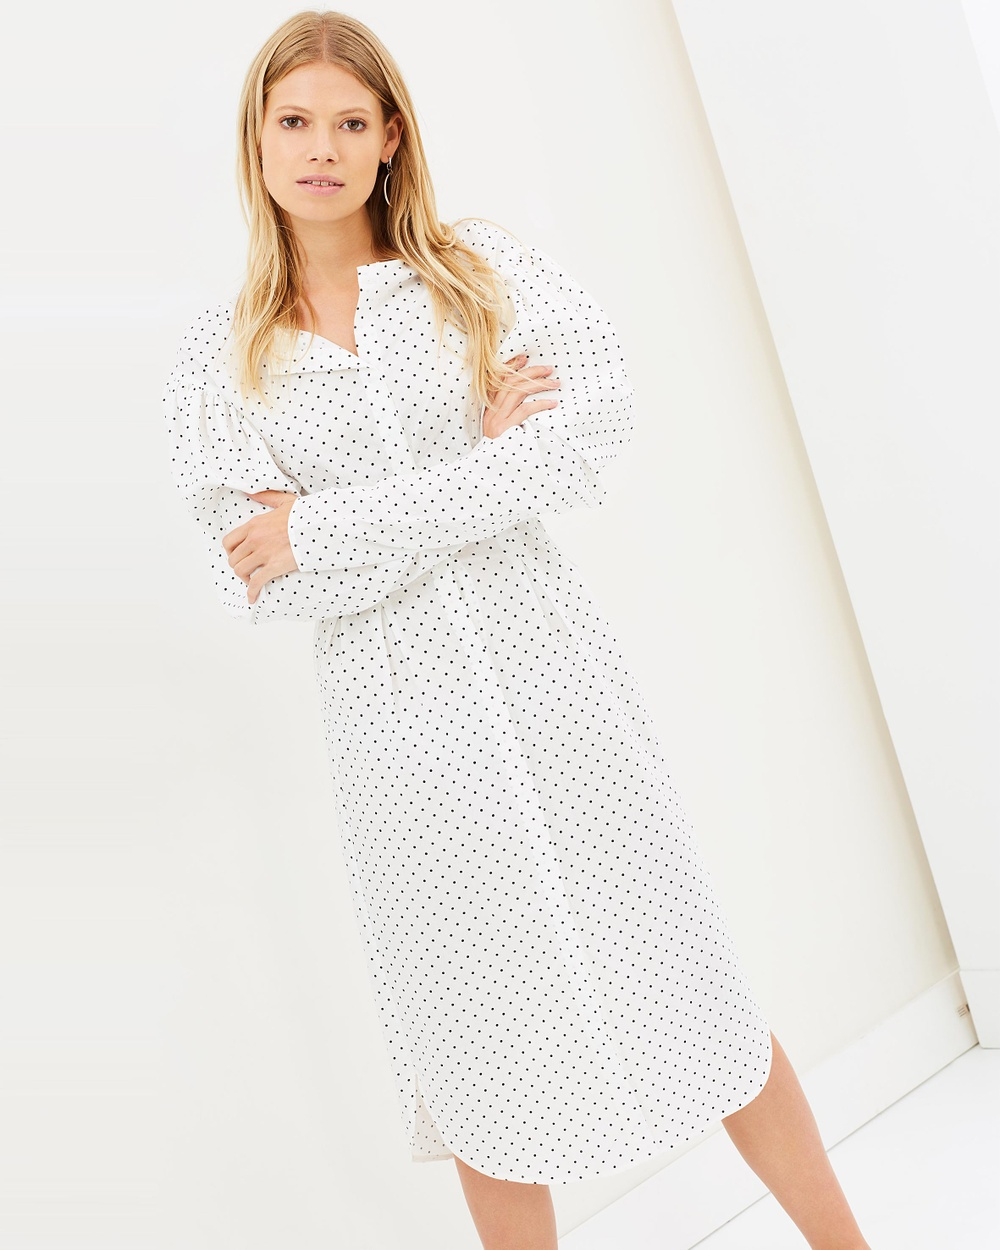 Georgia Alice Desert Shirt Dress Printed Dresses Polka Dot Desert Shirt Dress